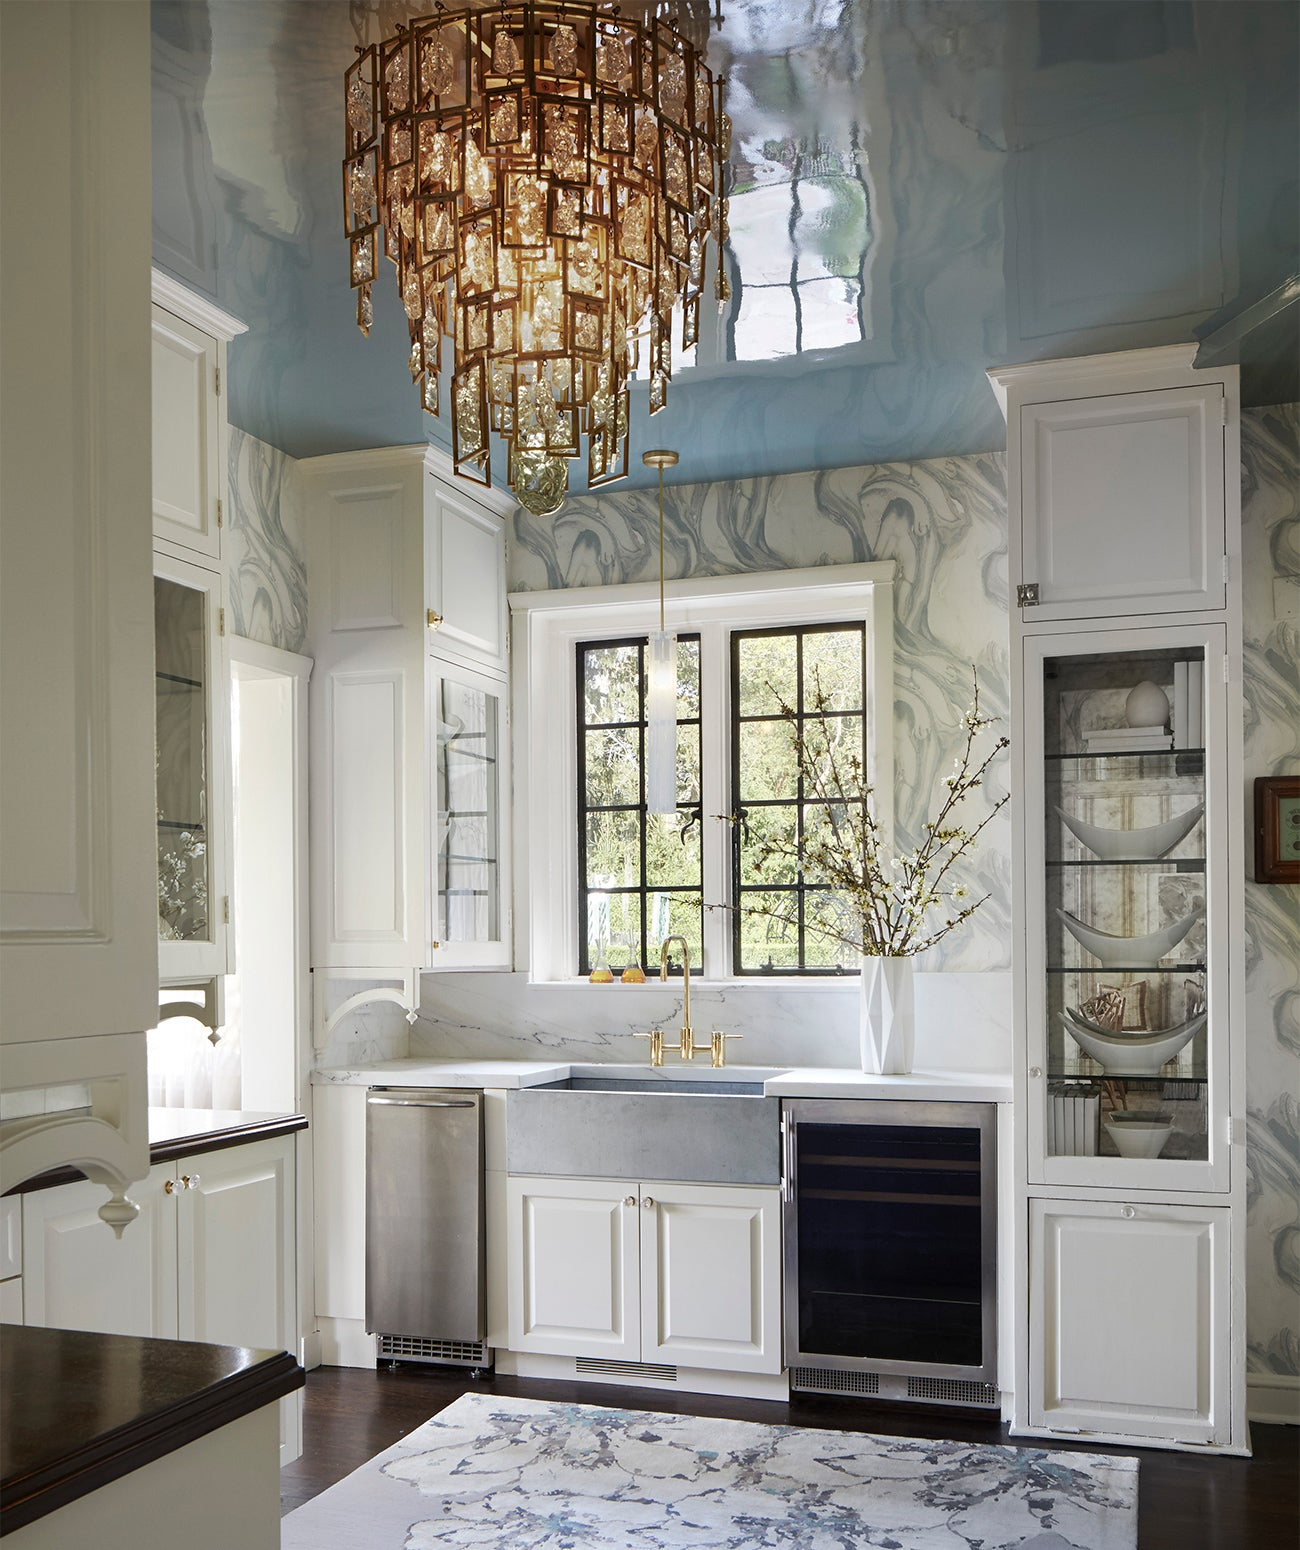 A spacious kitchen with light blue wallpaper/Photography: Amy Kartheiser Design/A kitchen with pale wallpaper feels airy yet welcoming.